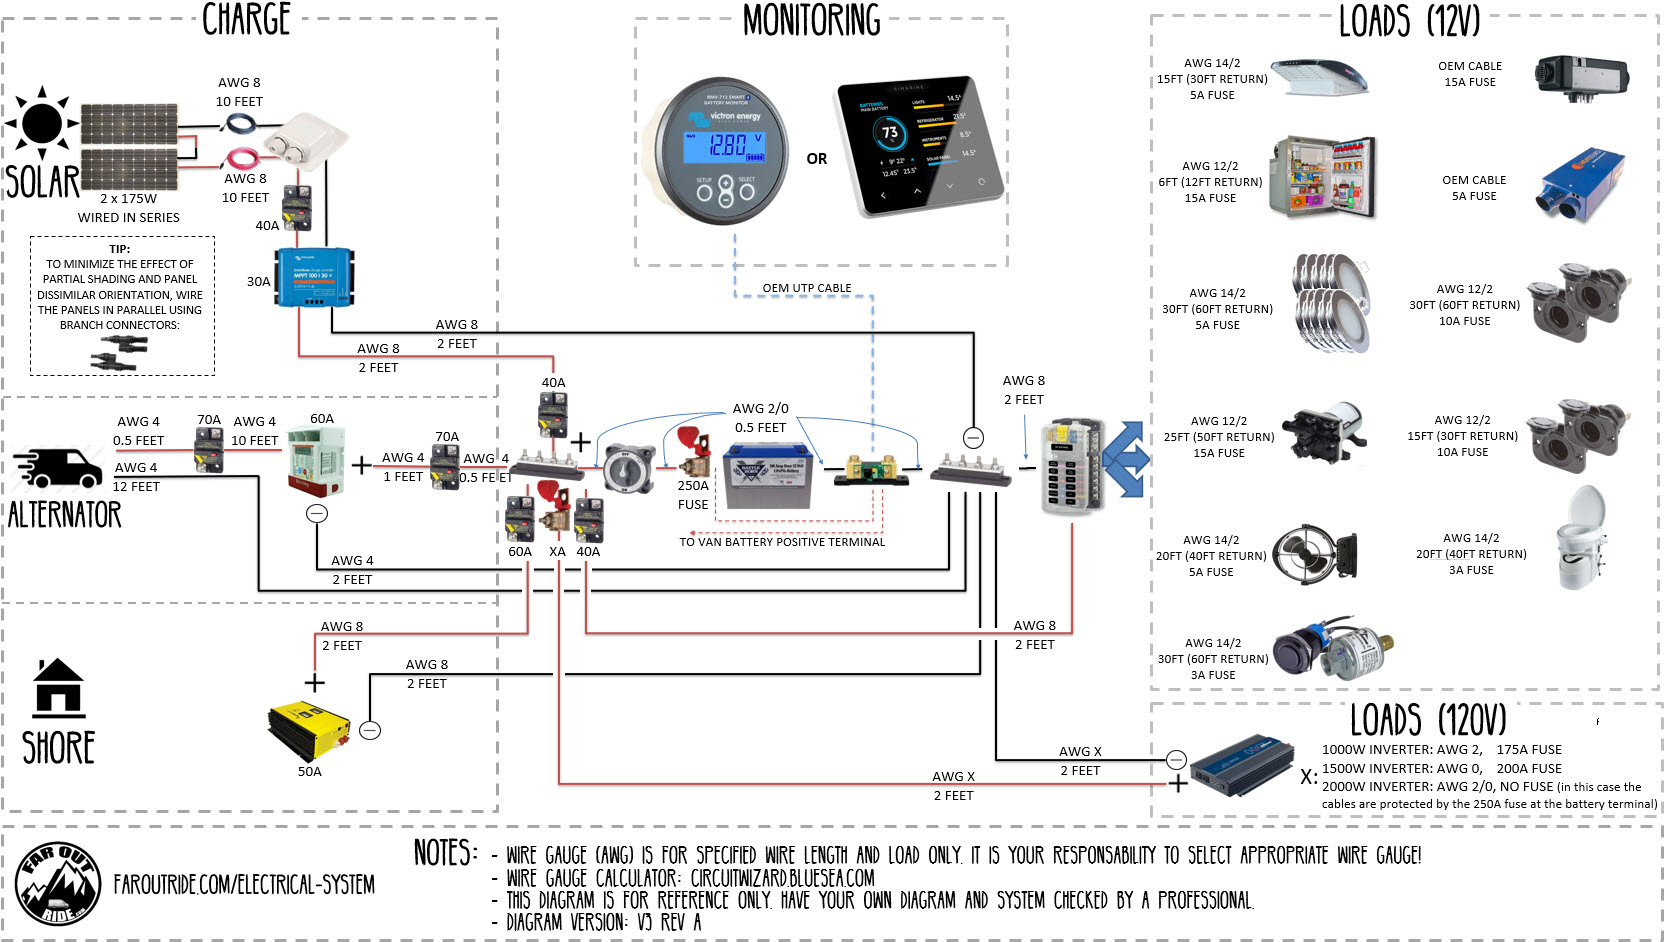 Interactive Wiring Diagram For Camper Van, Skoolie, RV ...